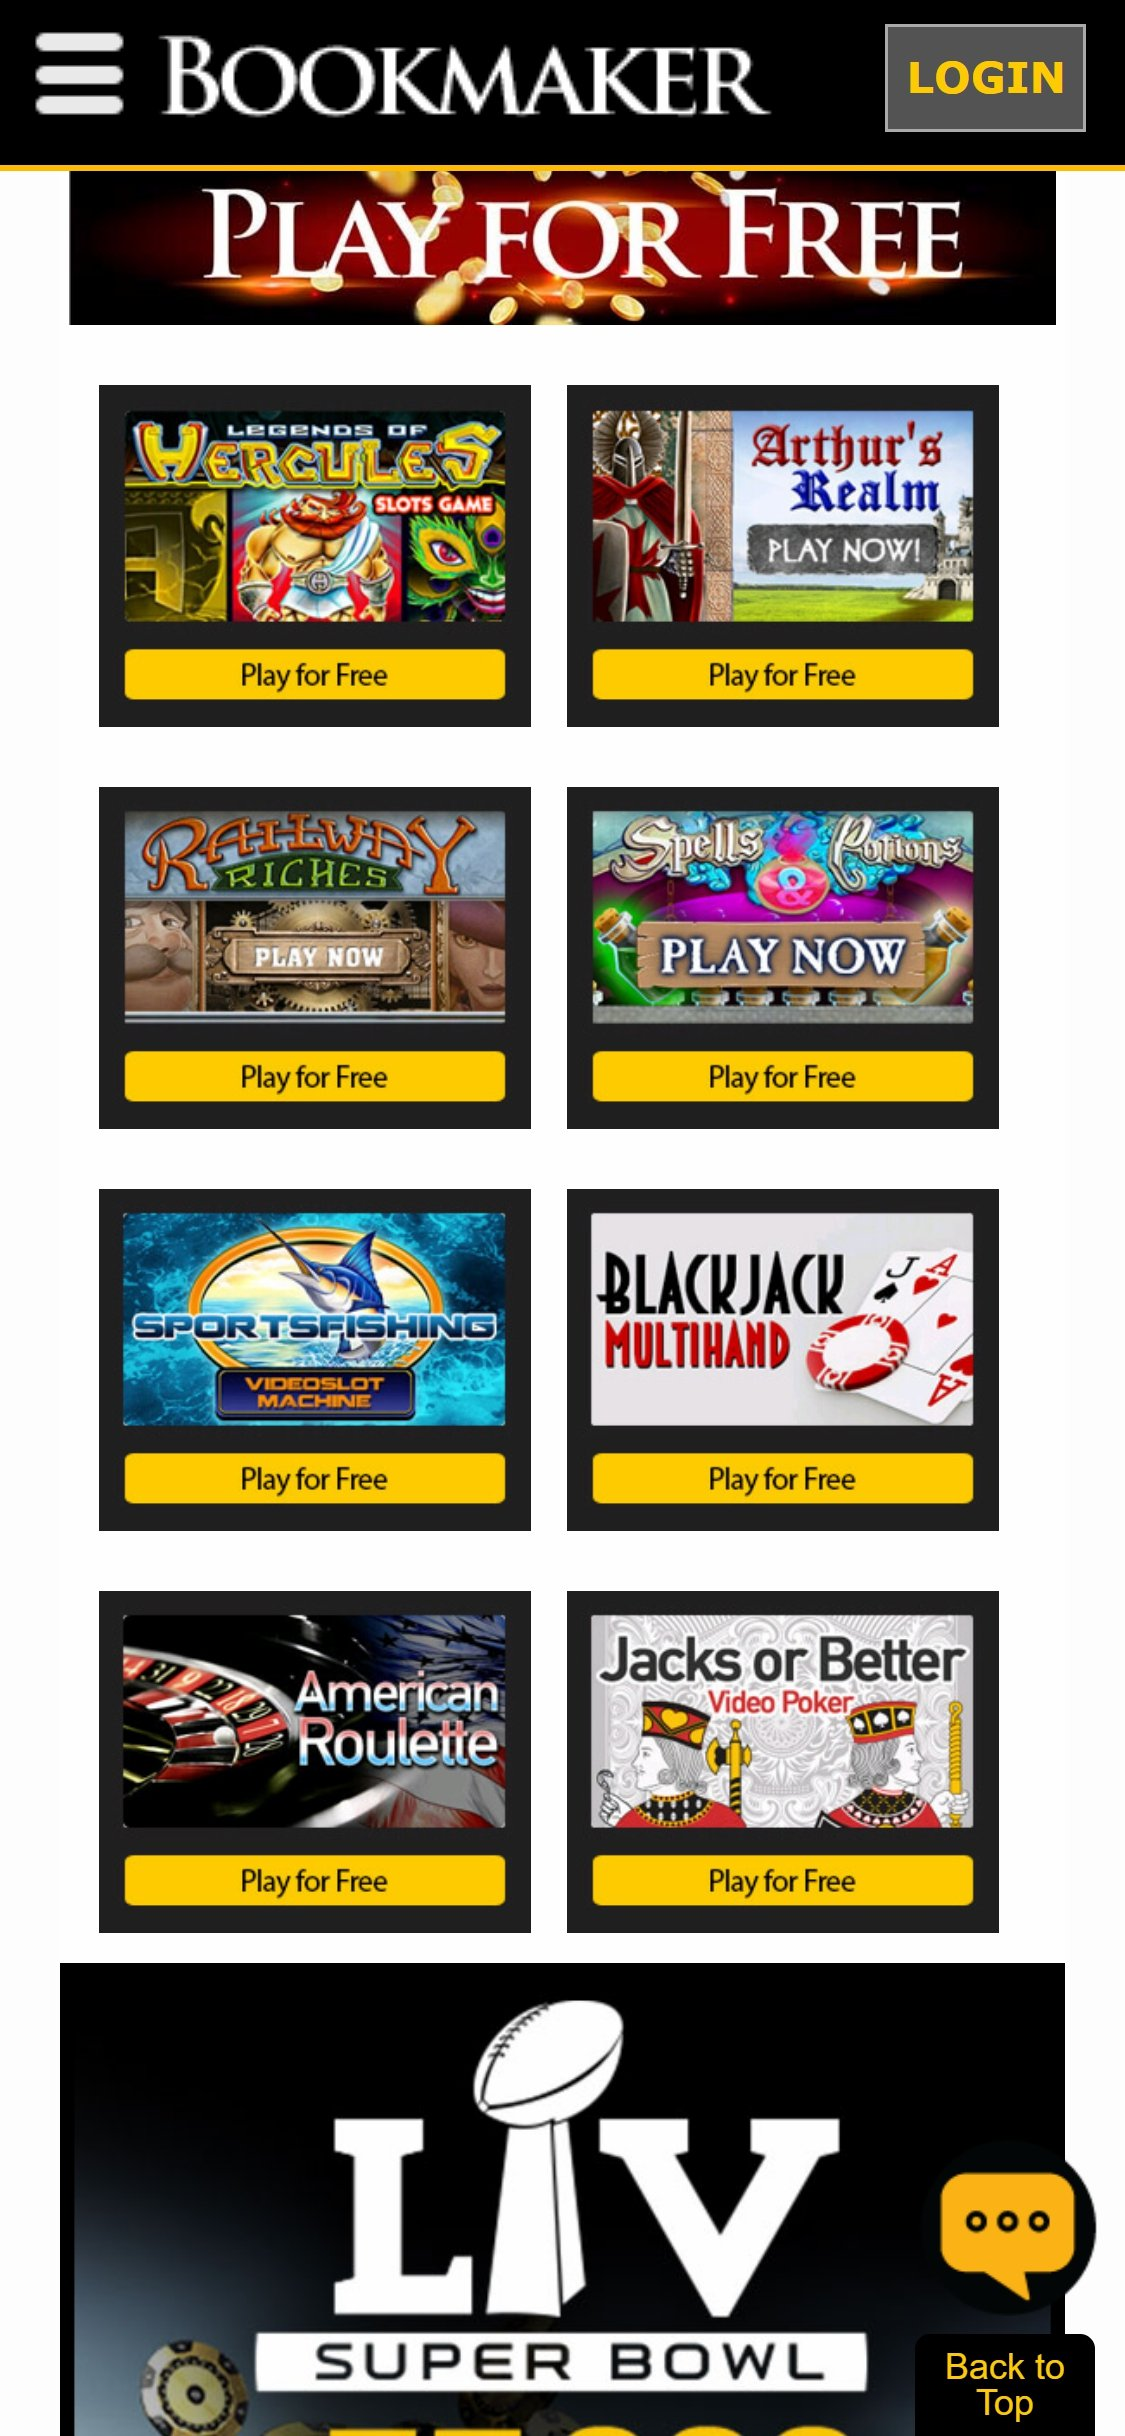 BookMaker Casino Games